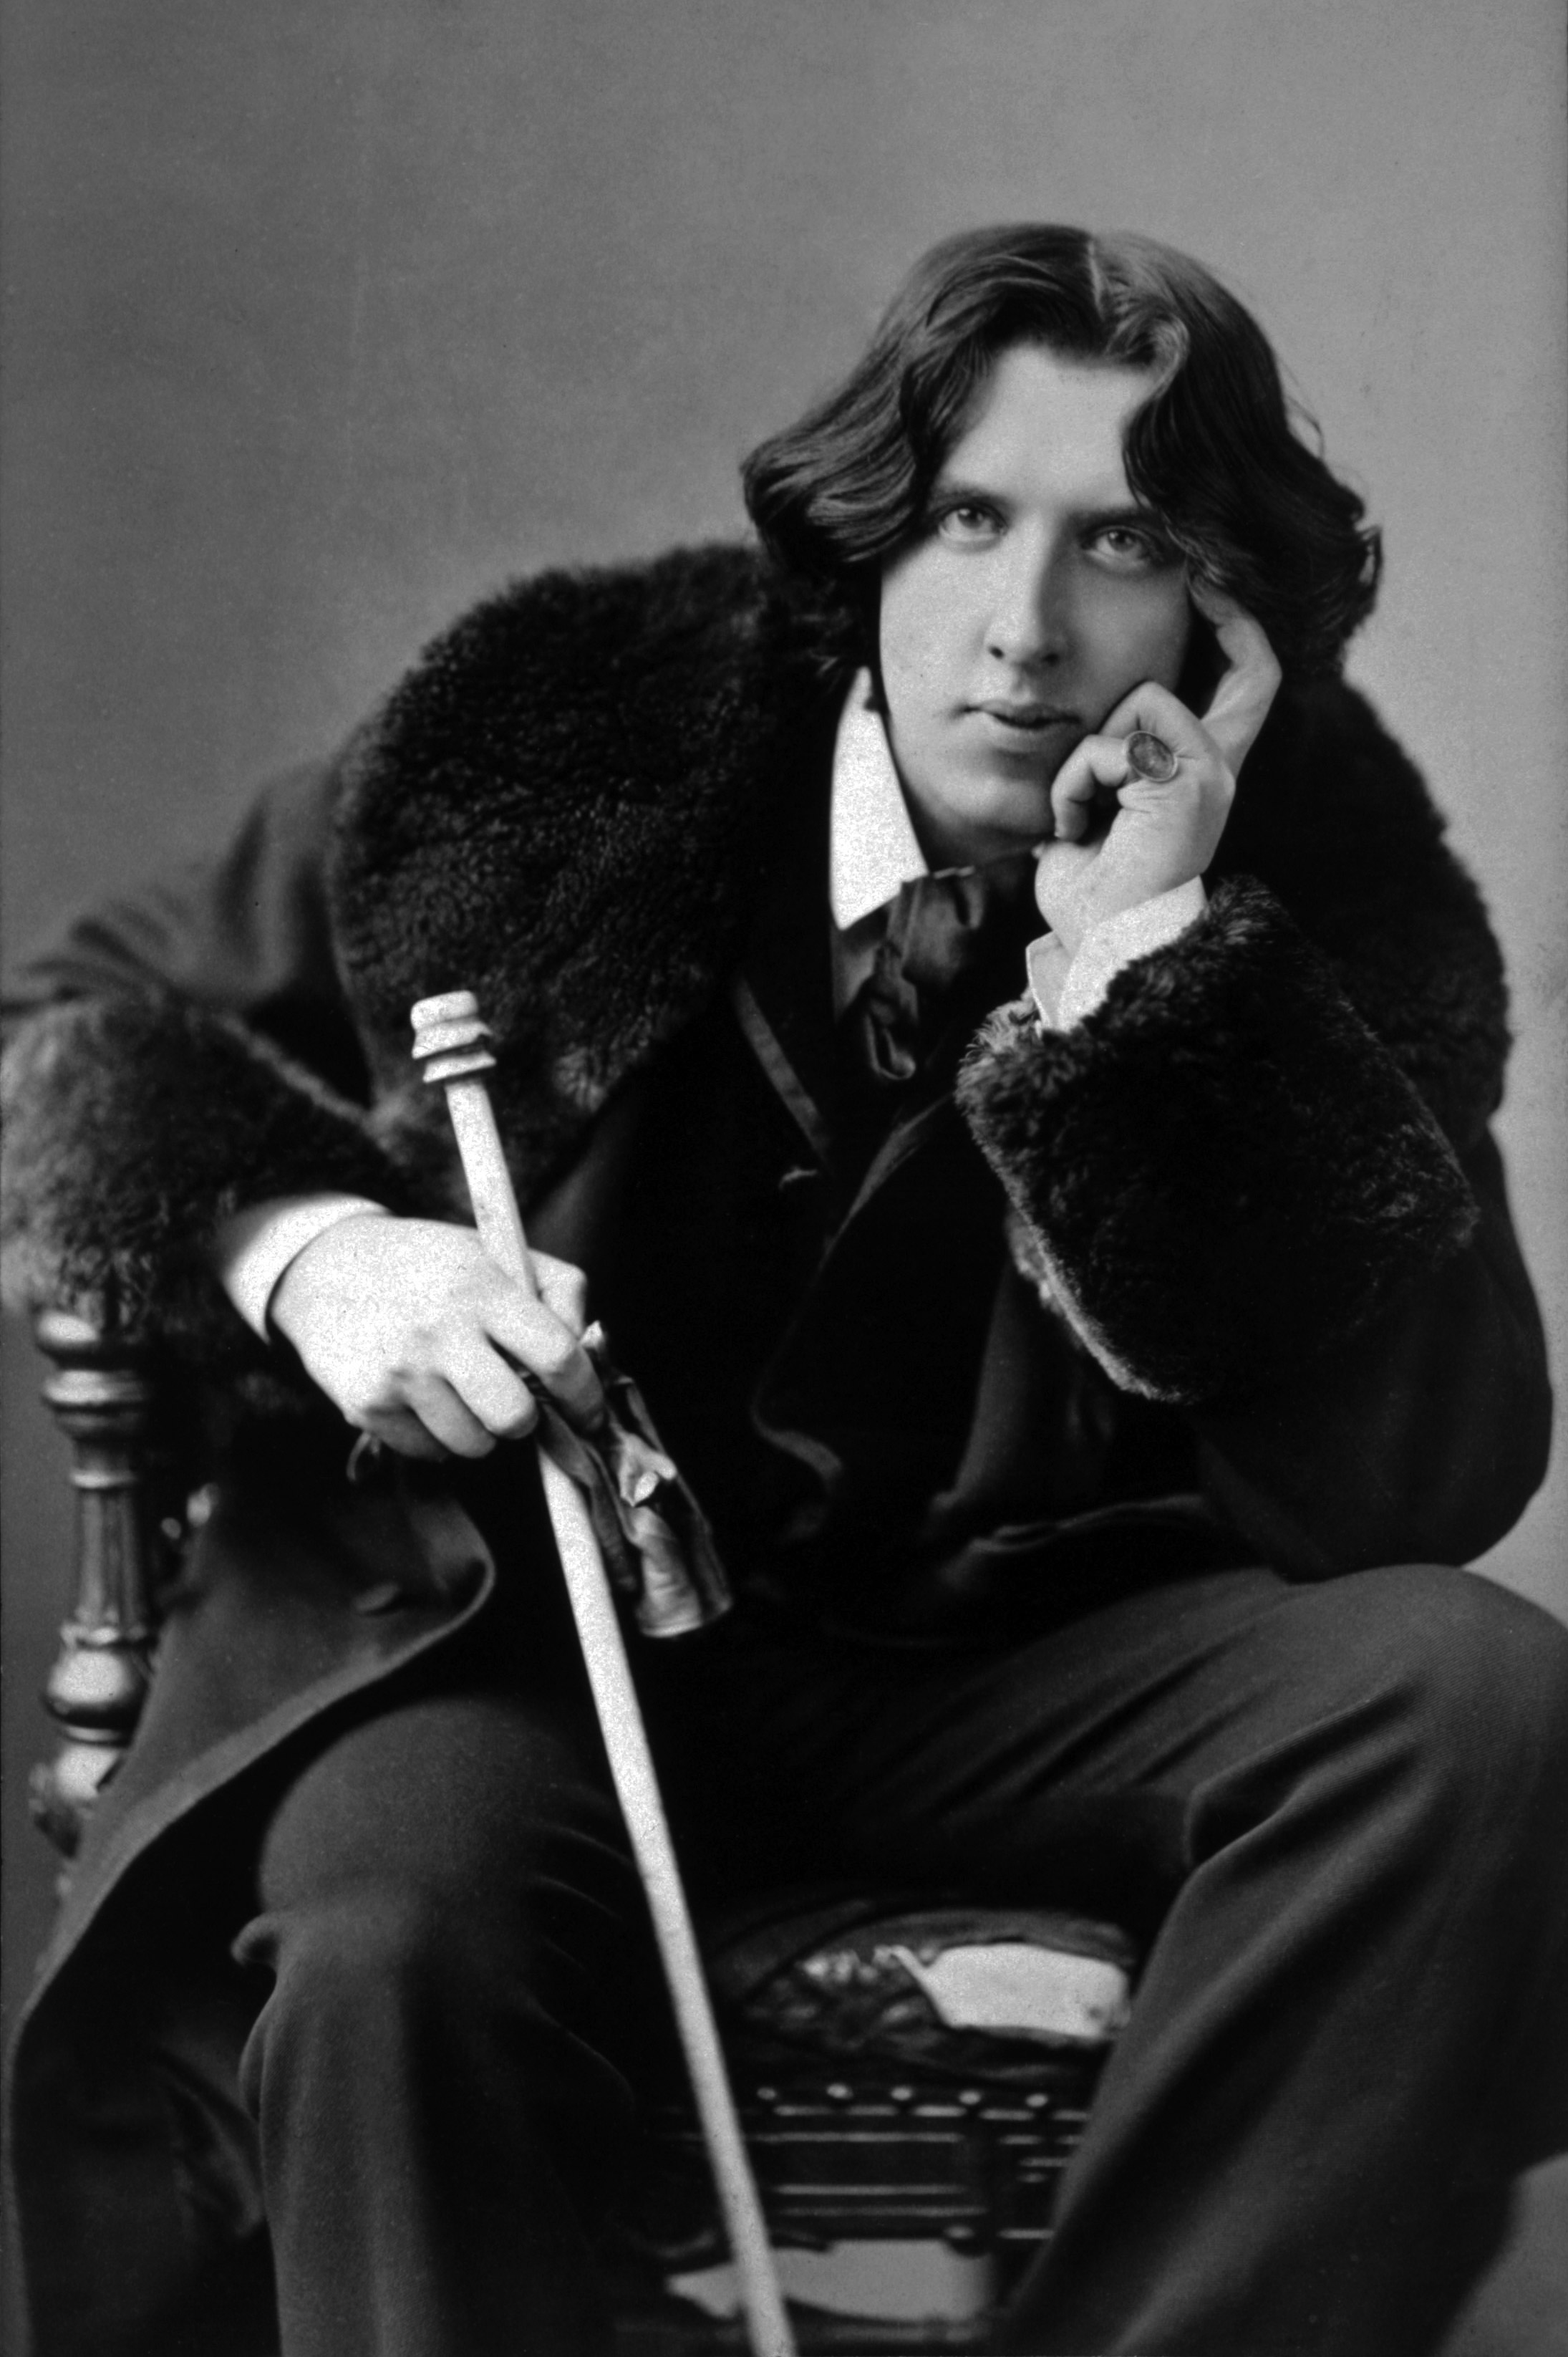 http://upload.wikimedia.org/wikipedia/commons/9/9c/Oscar_Wilde_portrait.jpg